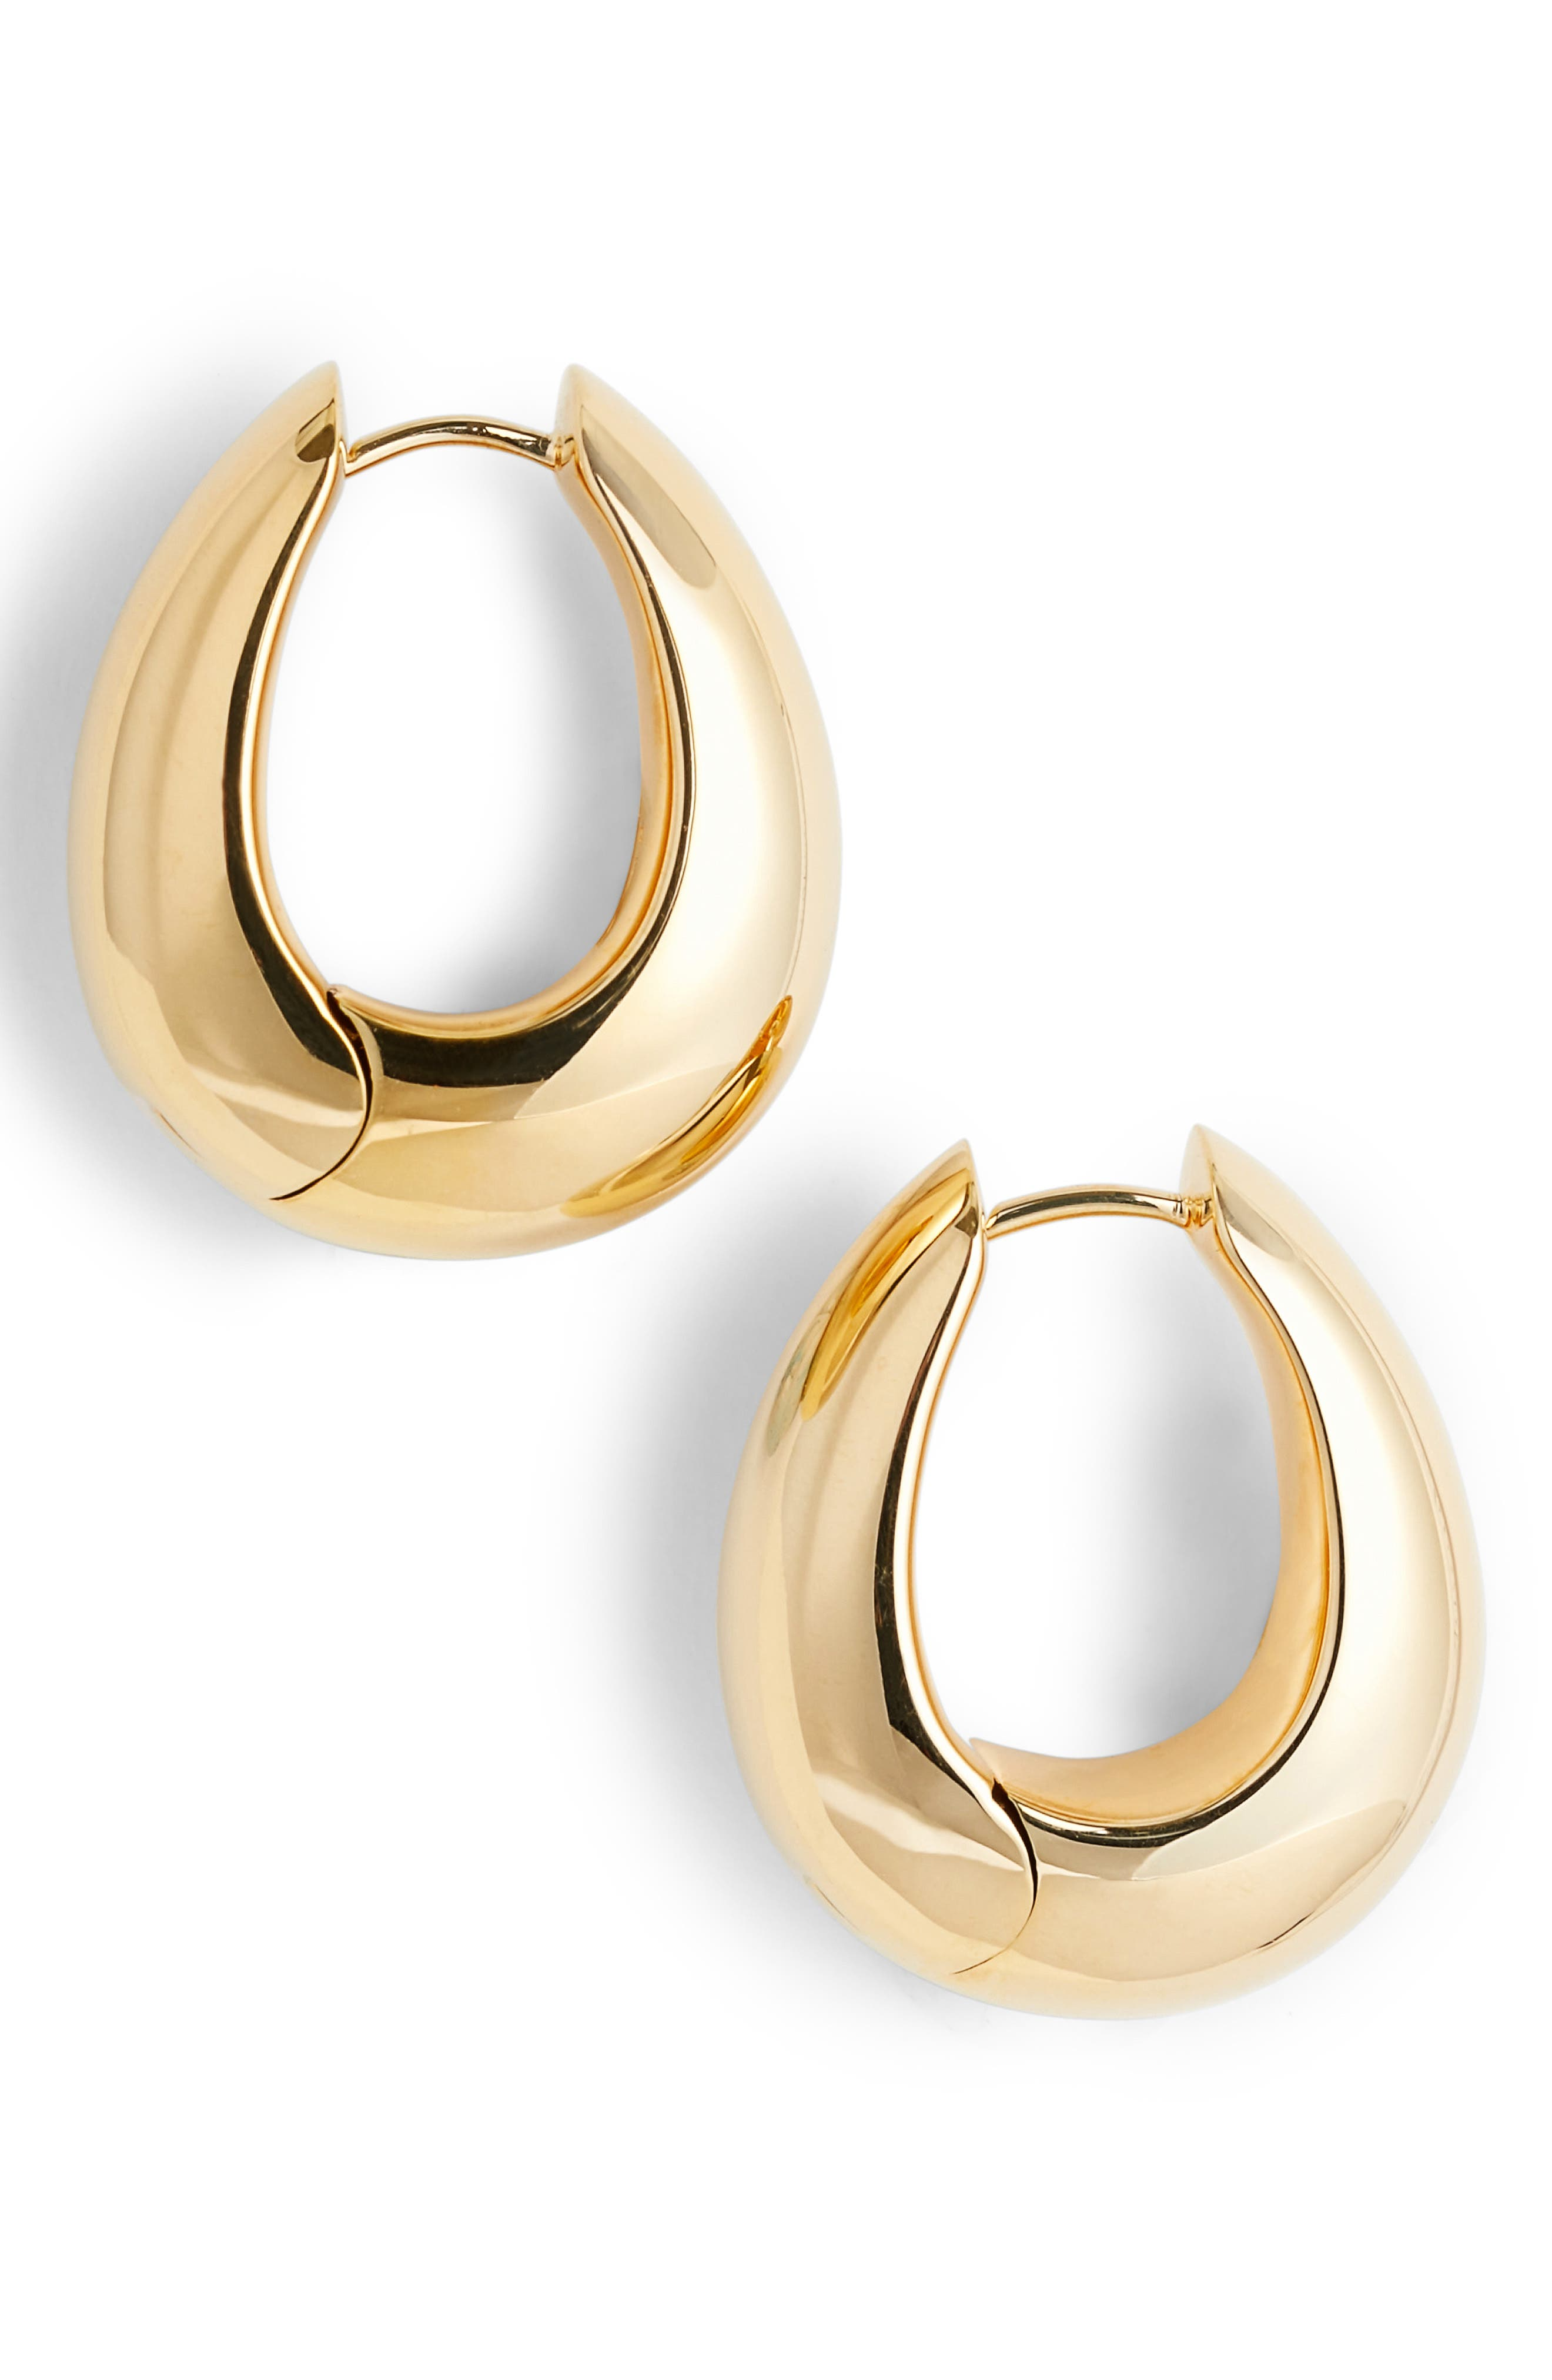 Large Ice Hoop Earrings,                             Main thumbnail 1, color,                             925 SILVER/9K GOLD